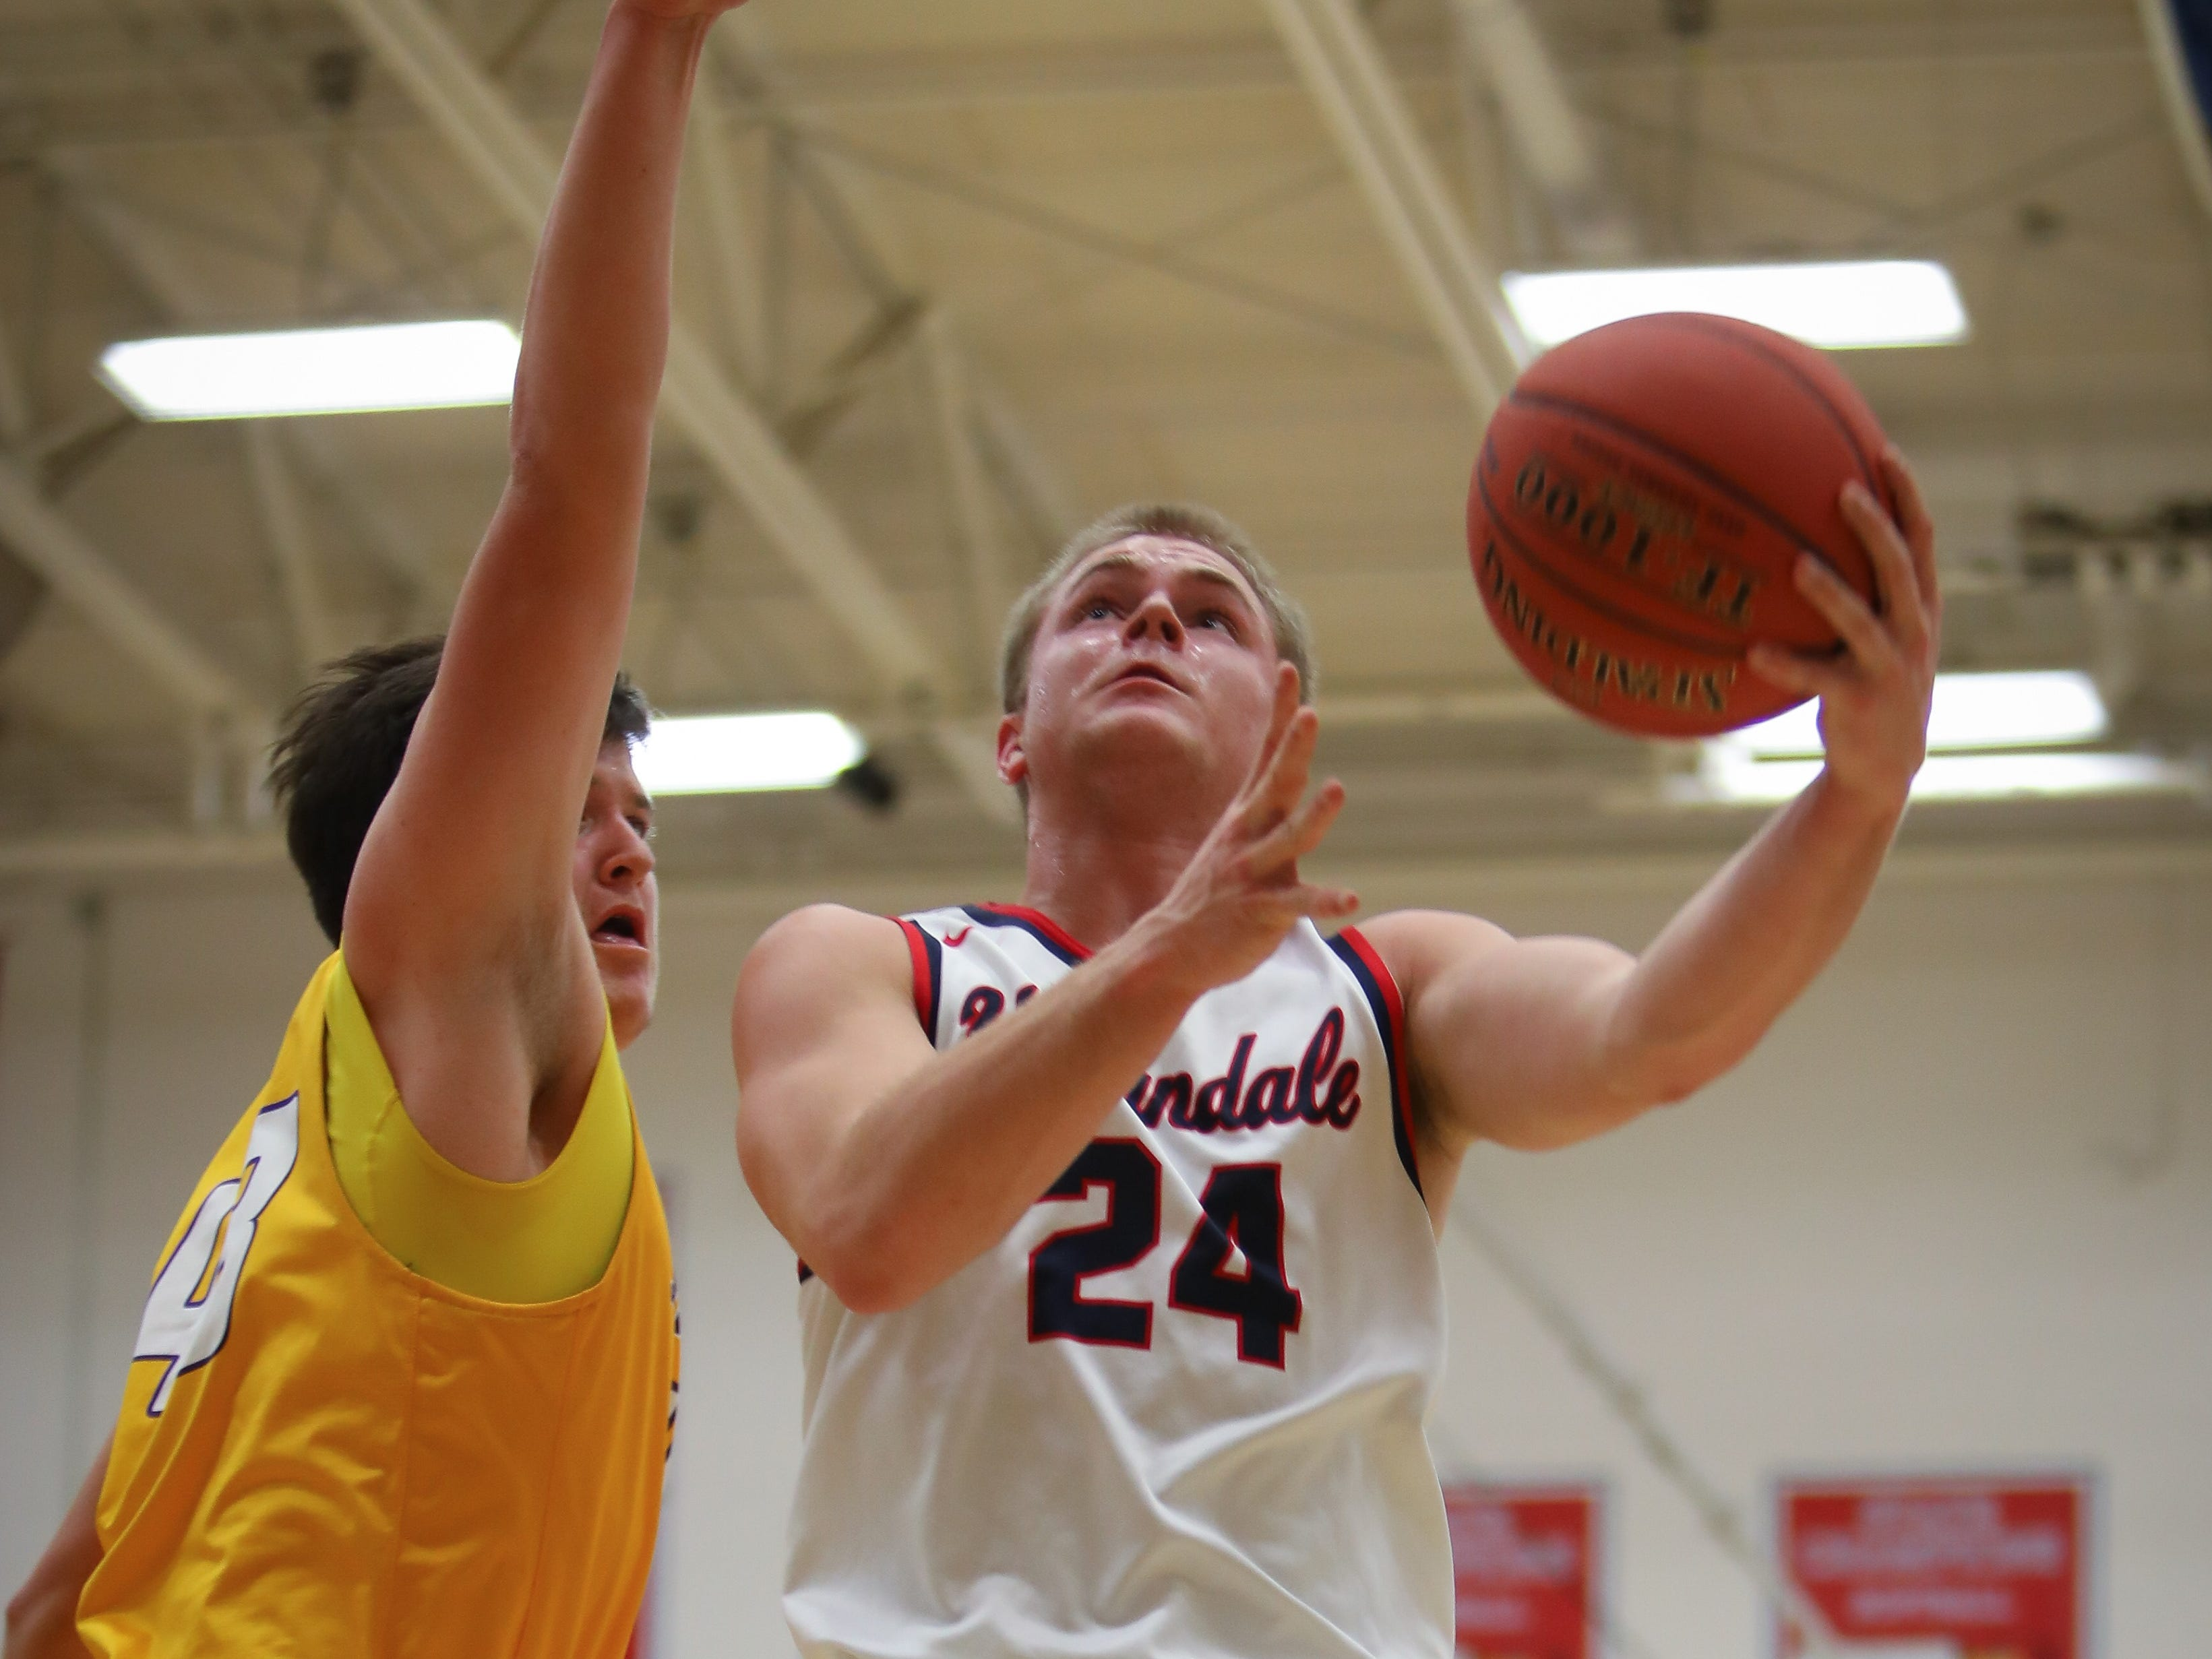 Urbandale senior Will Pattison goes for a layup during a boys high school basketball game between the Johnston Dragons and the Urbandale J-Hawks at Urbandale High School on Dec. 18, 2018 in Urbandale, Iowa.